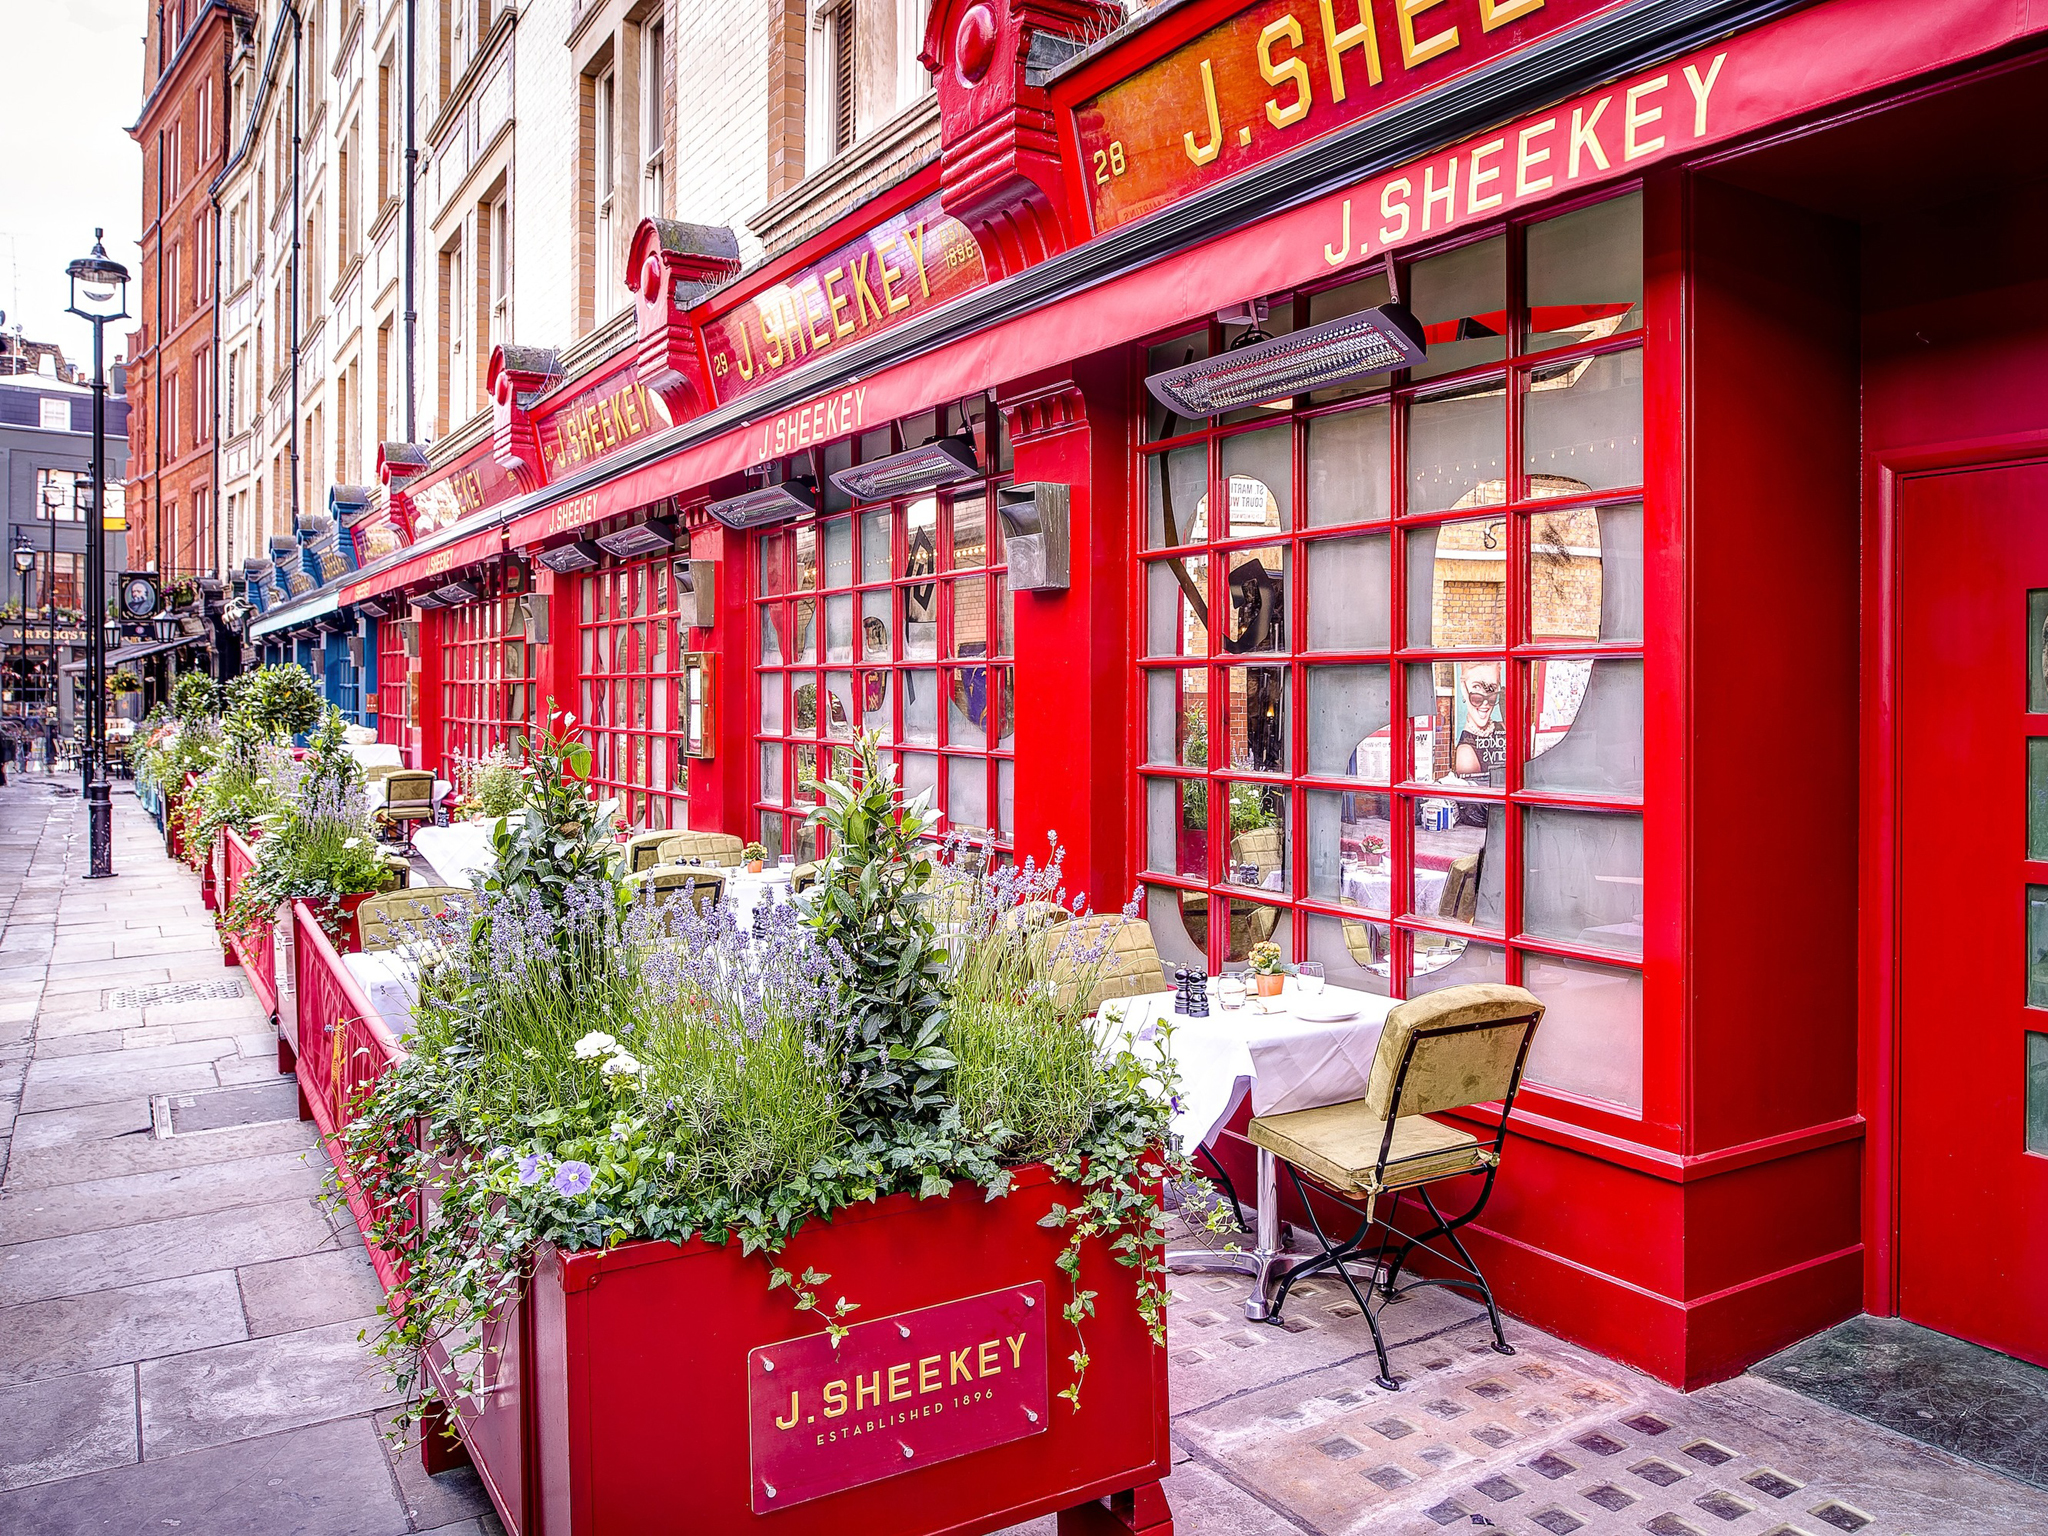 Covent Garden restaurants, J Sheekey